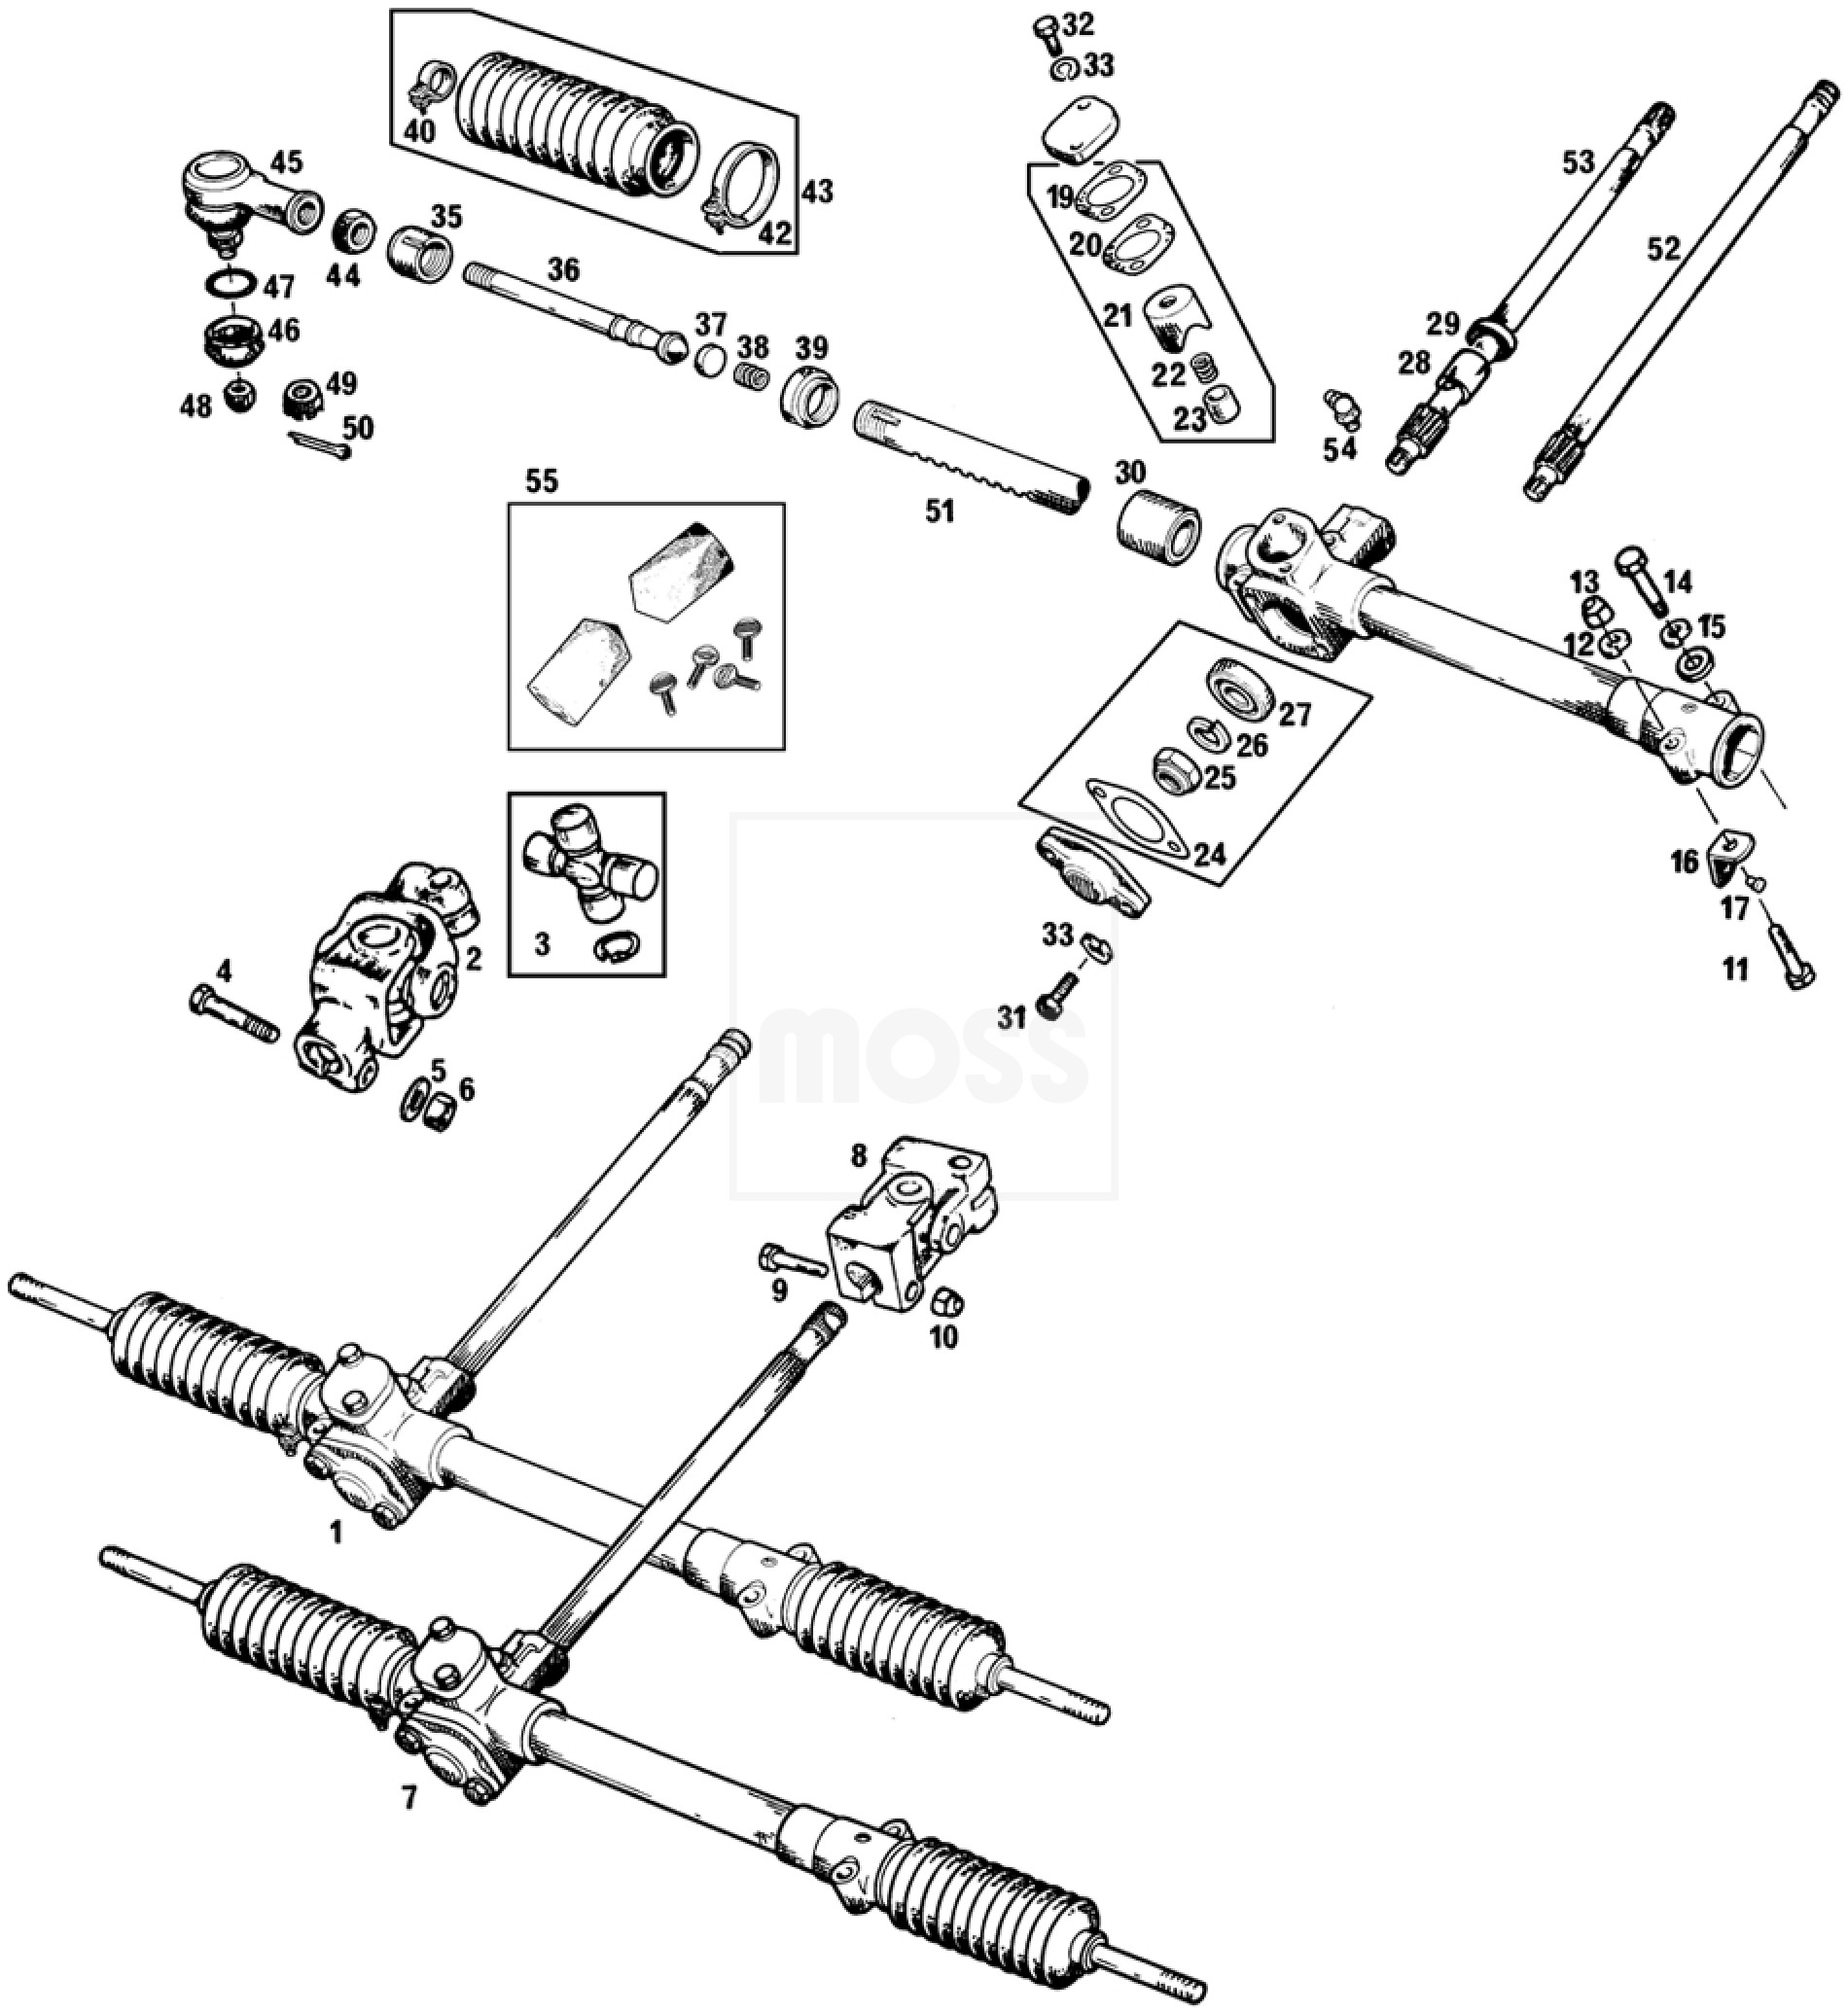 MGB steeering rack replacement or inner tie rod end repair